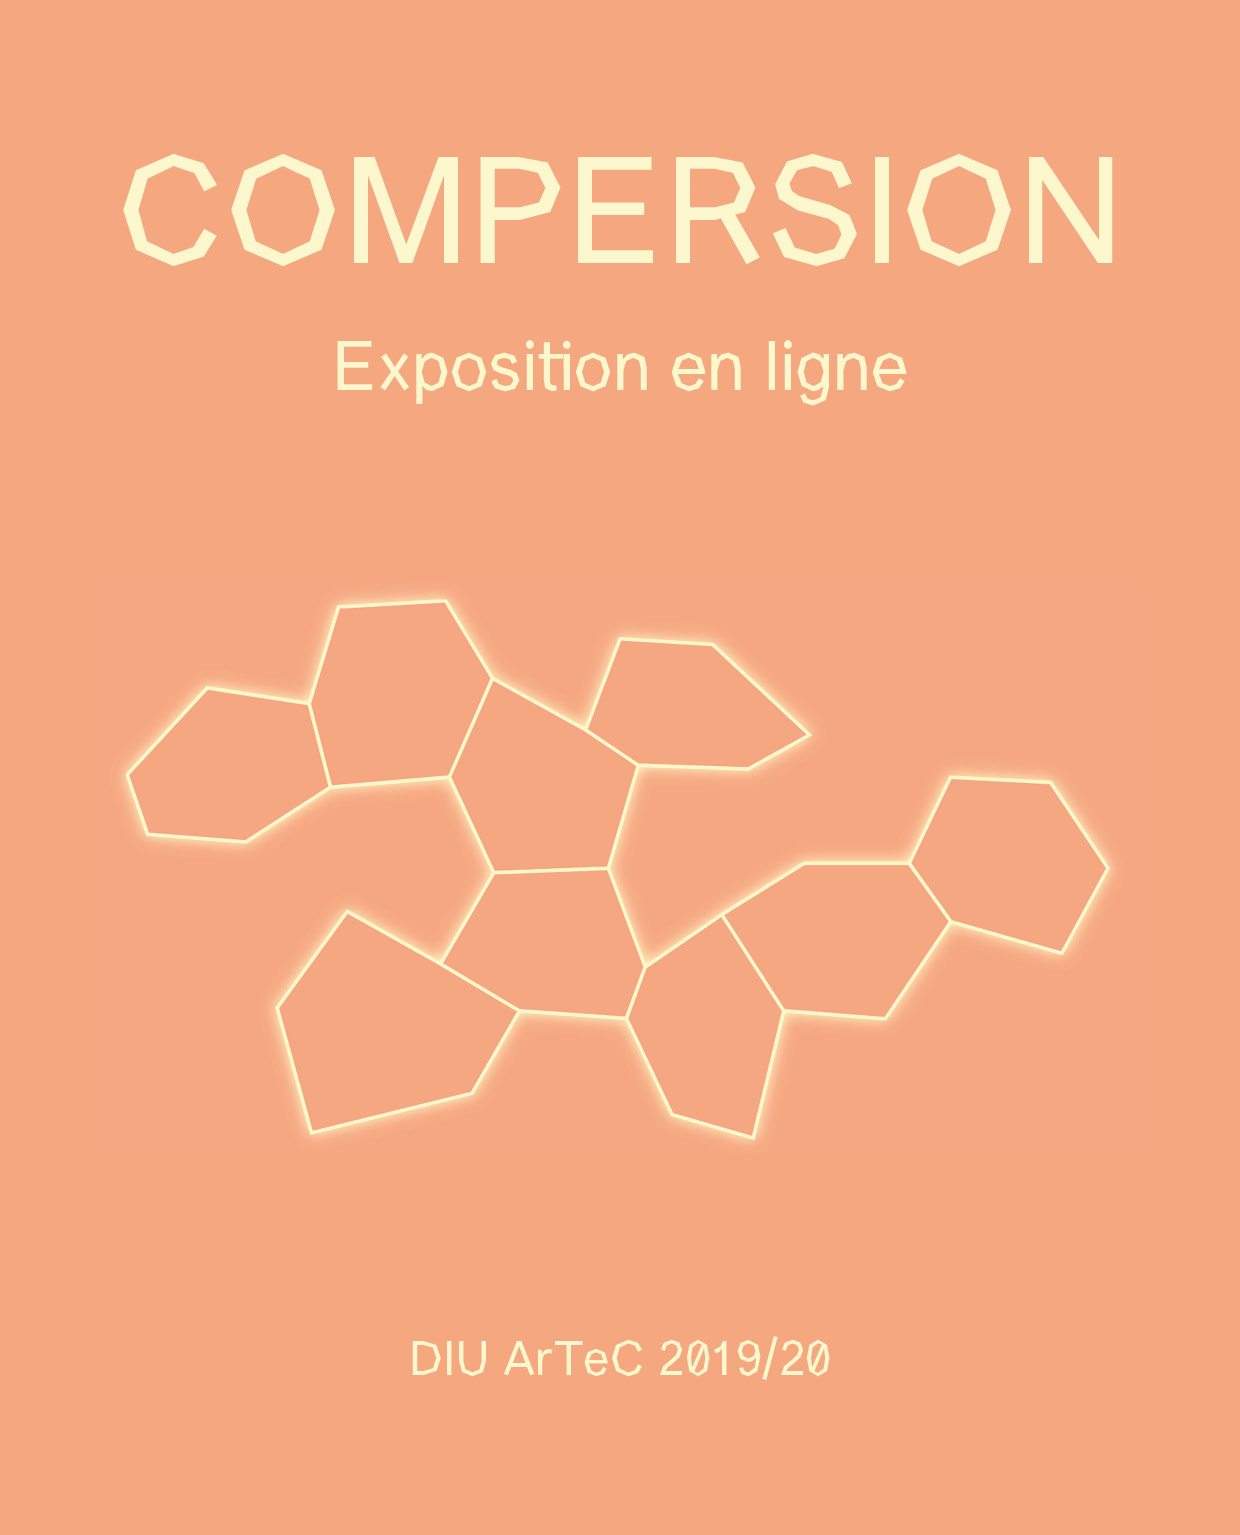 Exposition, Compersion